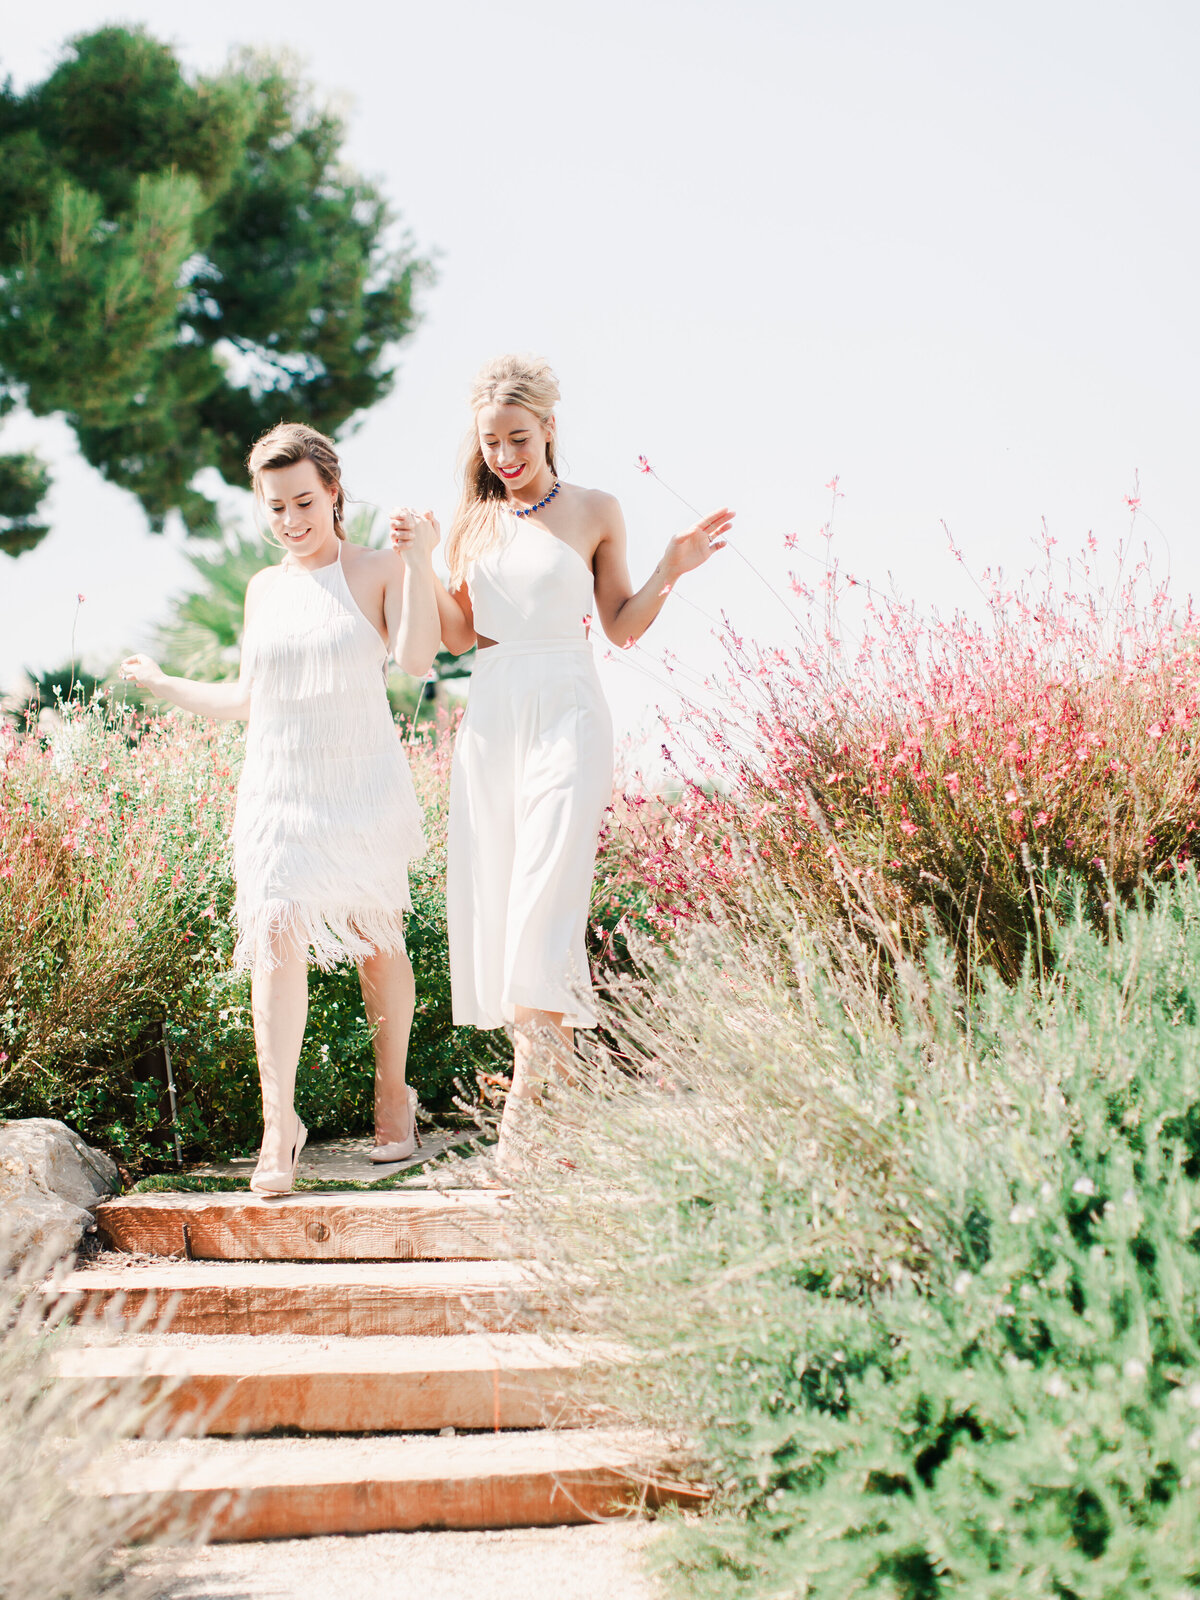 Masia_Casa_Del_Mar_Barcelona_Wedding15-2